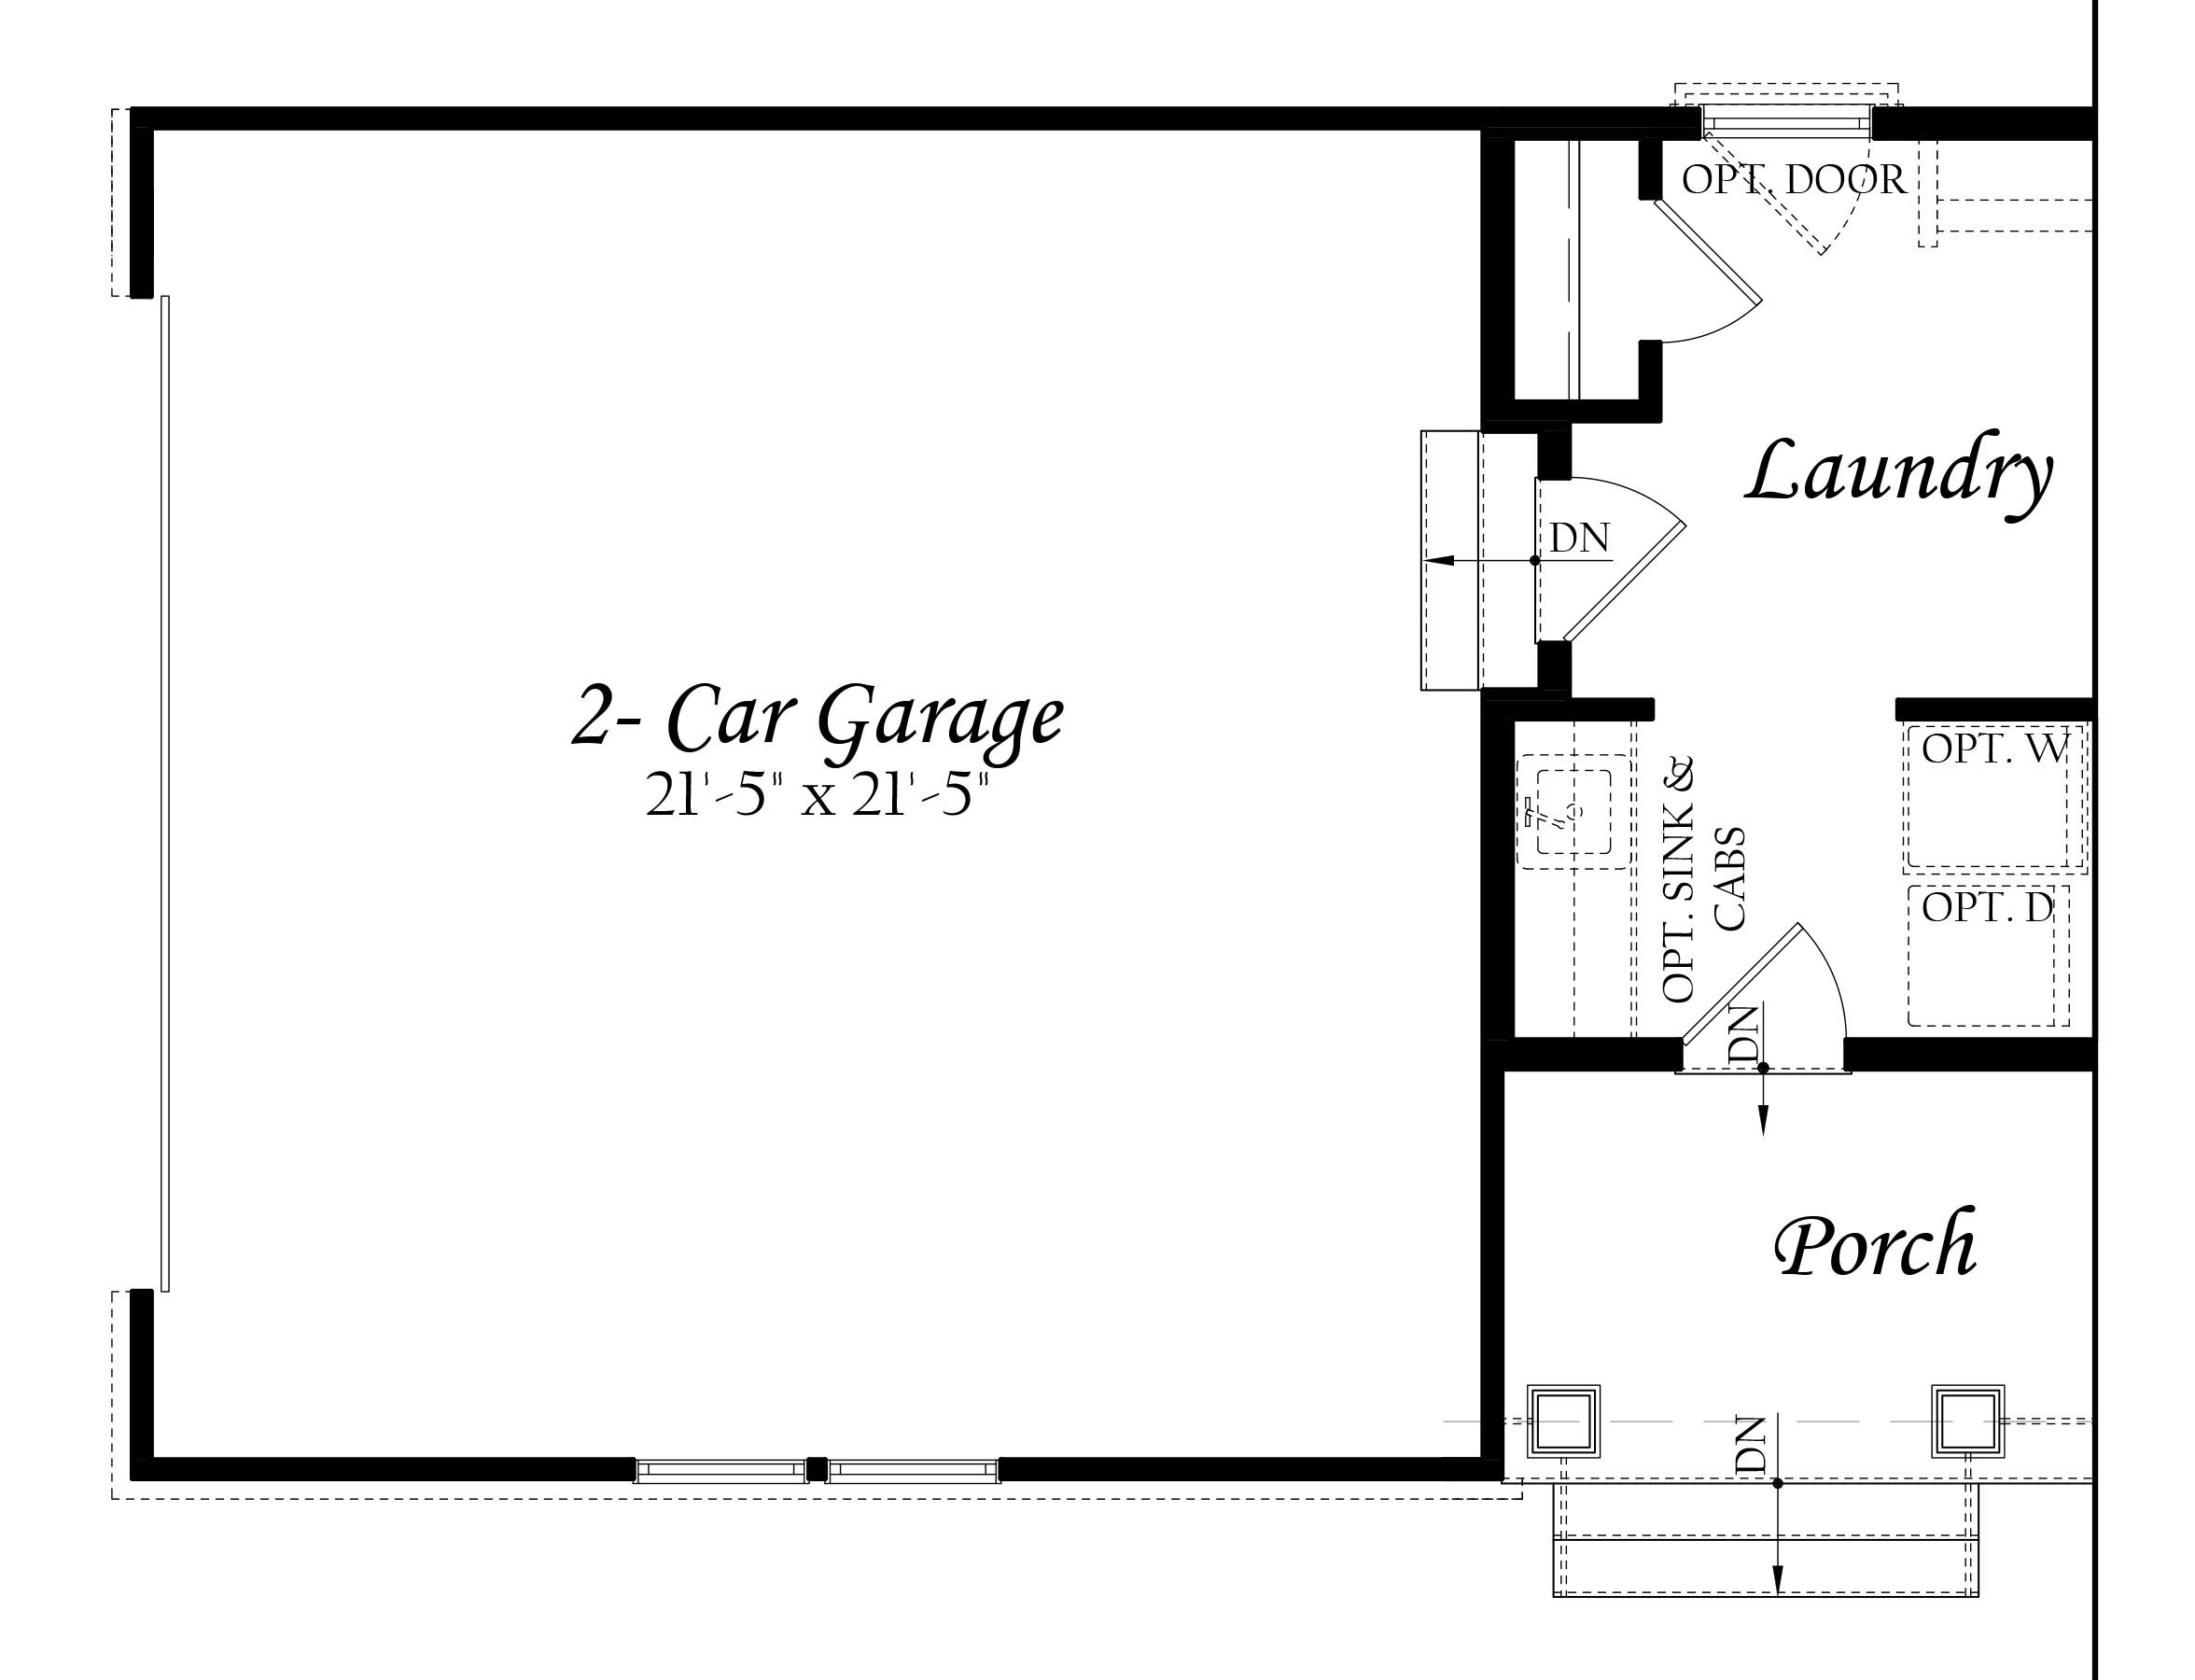 Aquinnah 3x0 - Floor Plan - Master - opt 2 car sideload garage